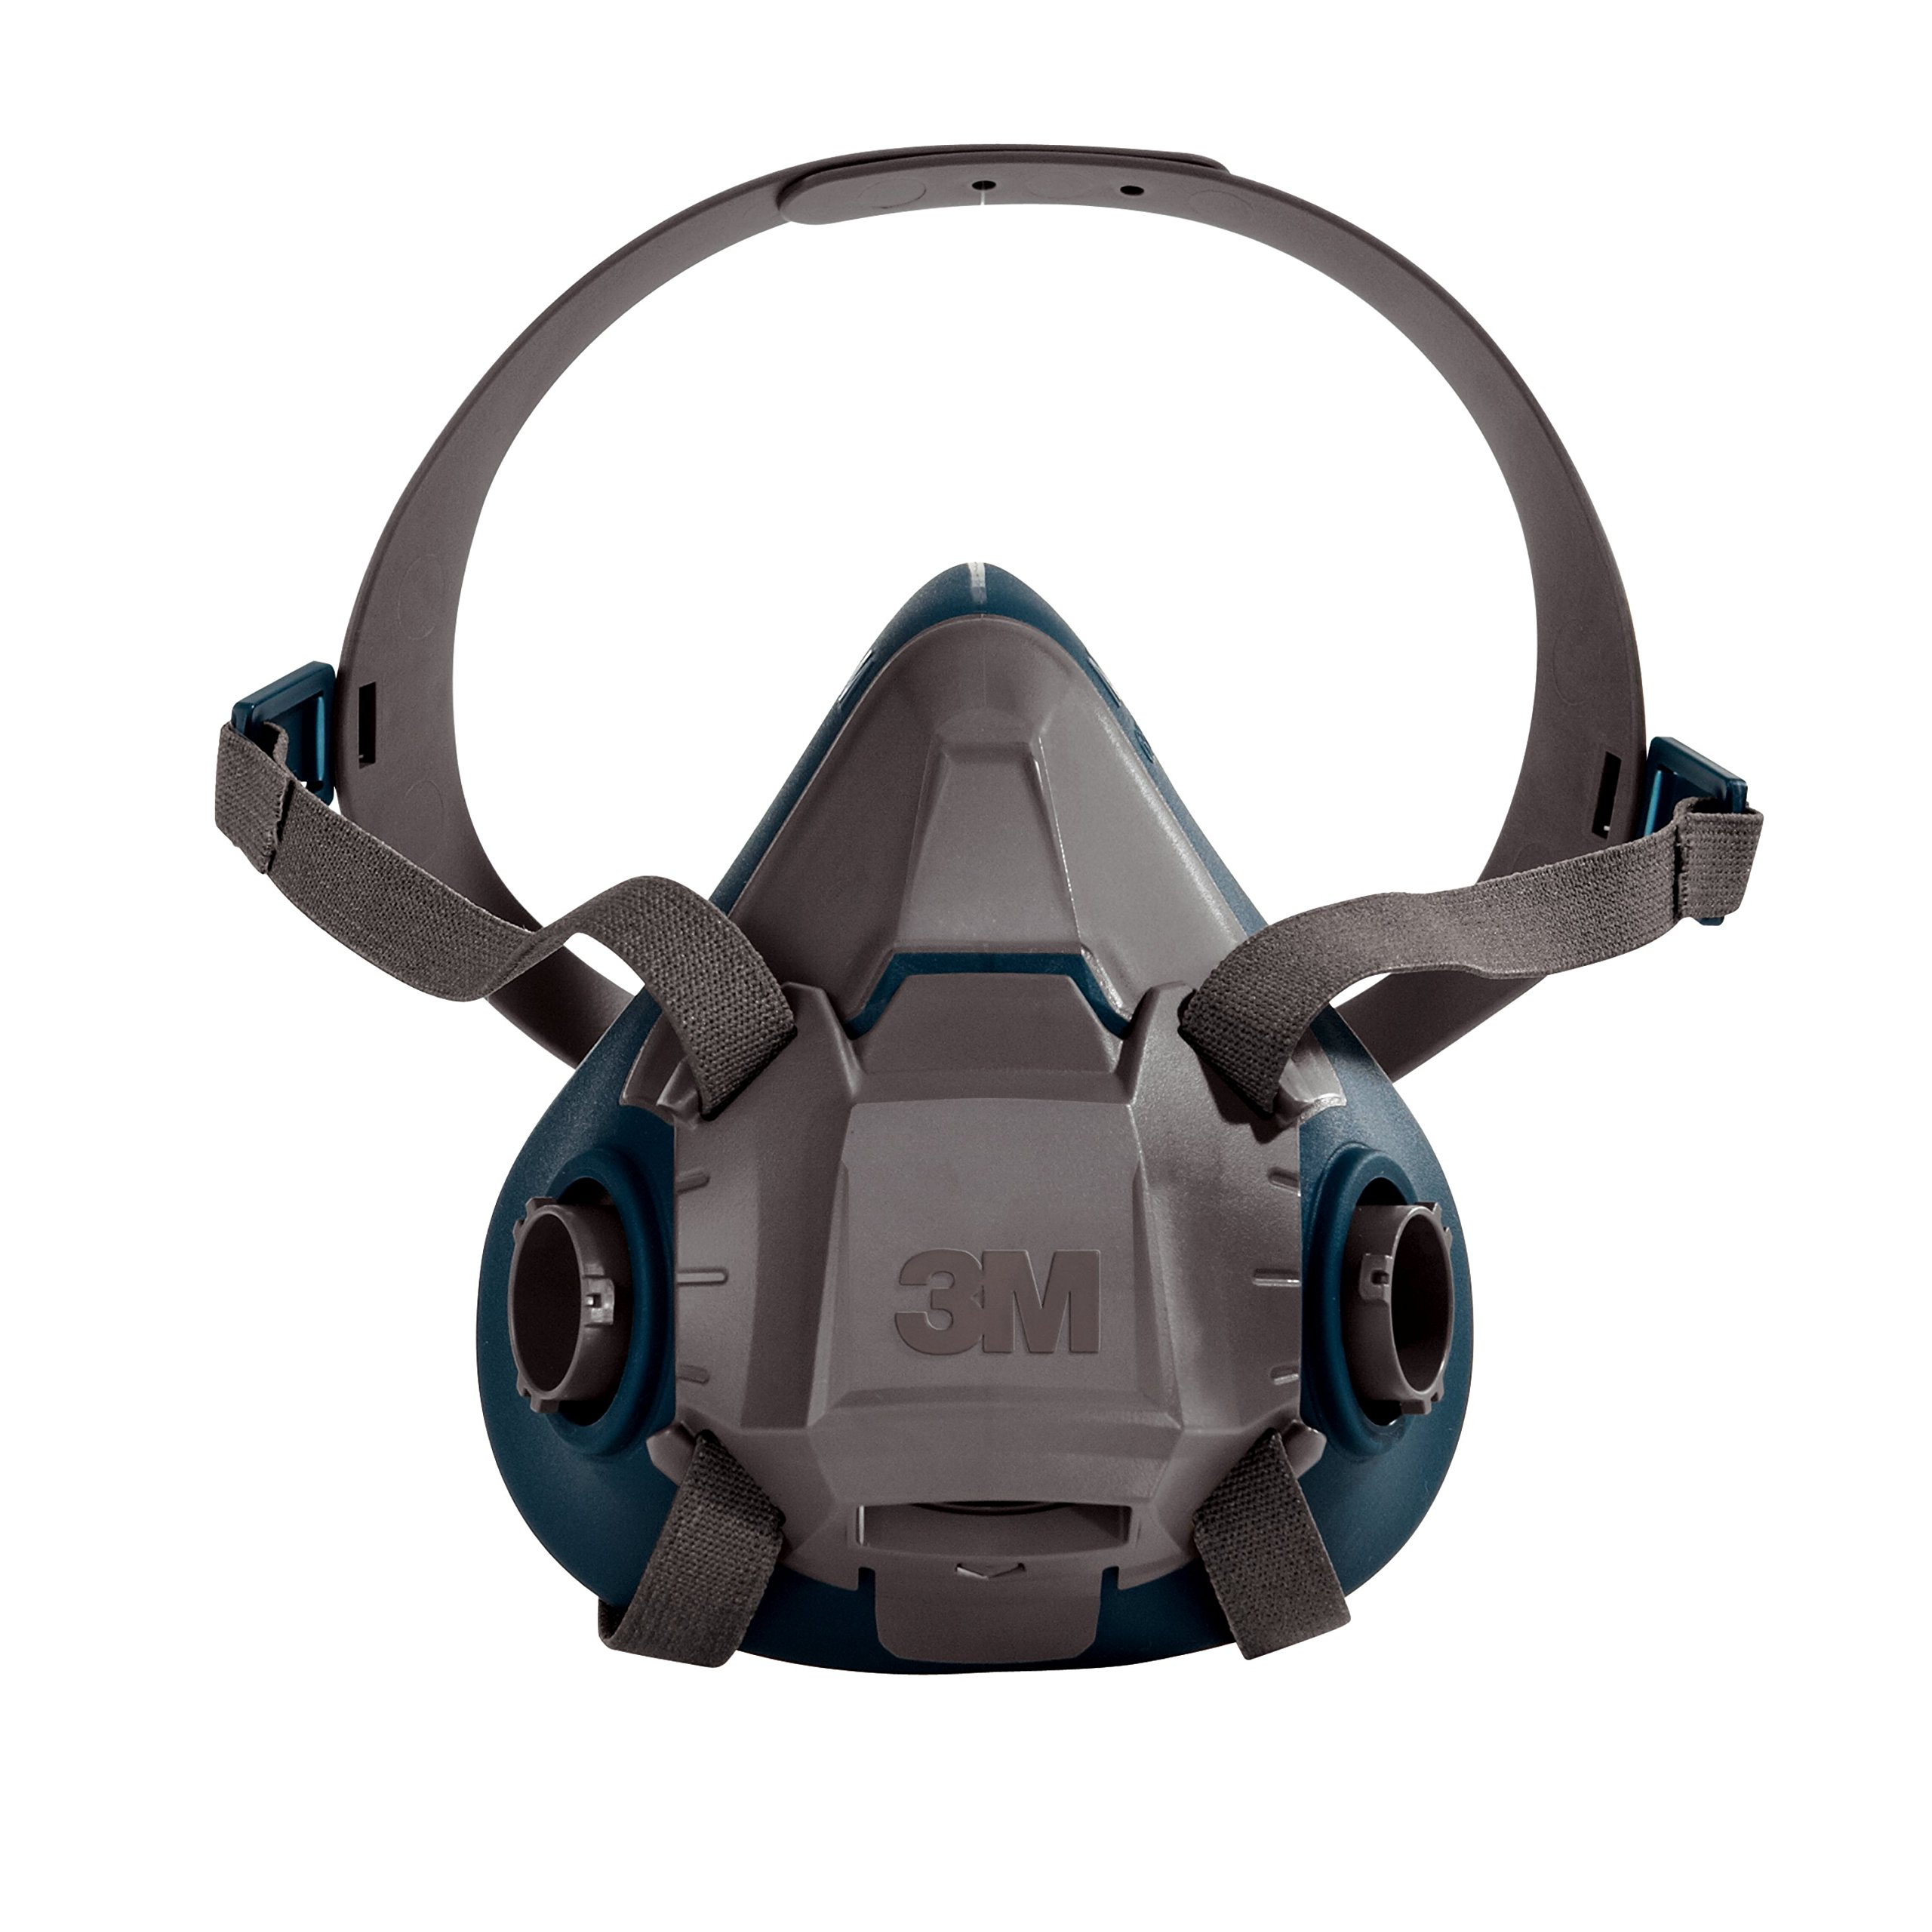 3M Rugged Comfort Half Facepiece Reusable Respirator 6501/49487, Small